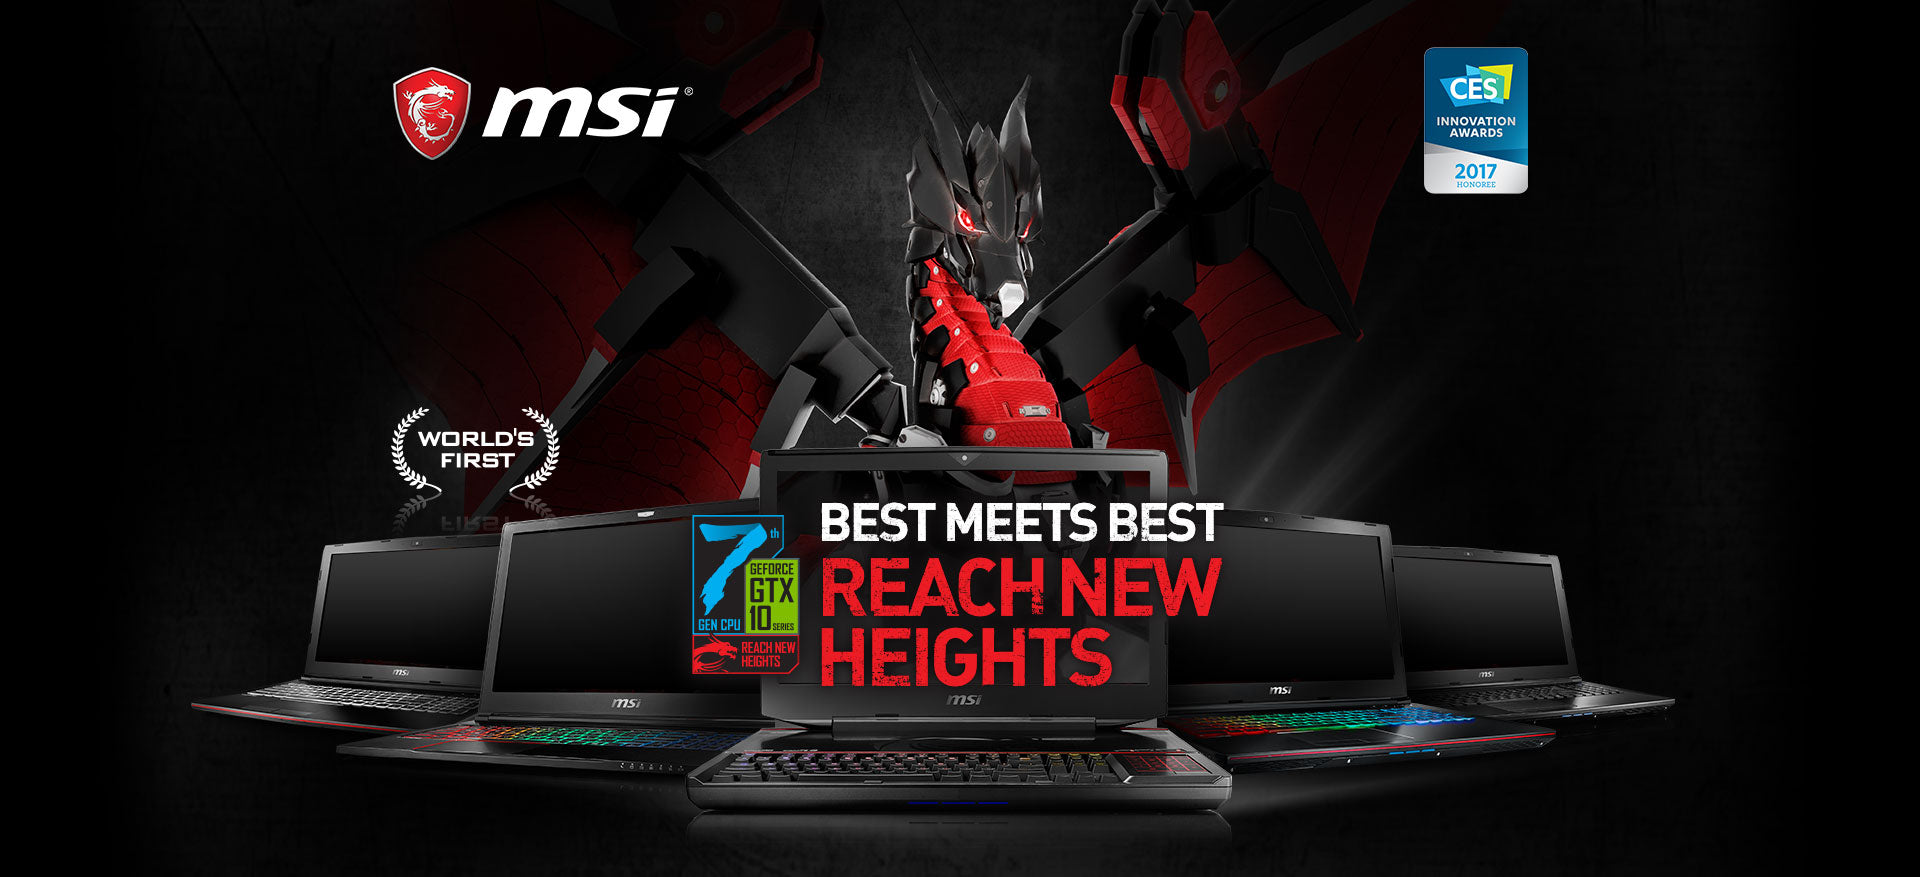 MSI. Best Meets Best. Reach New Heights. Worlds First. CES Innovation Aqards 2017 Honoree. Image of MSI laptops.